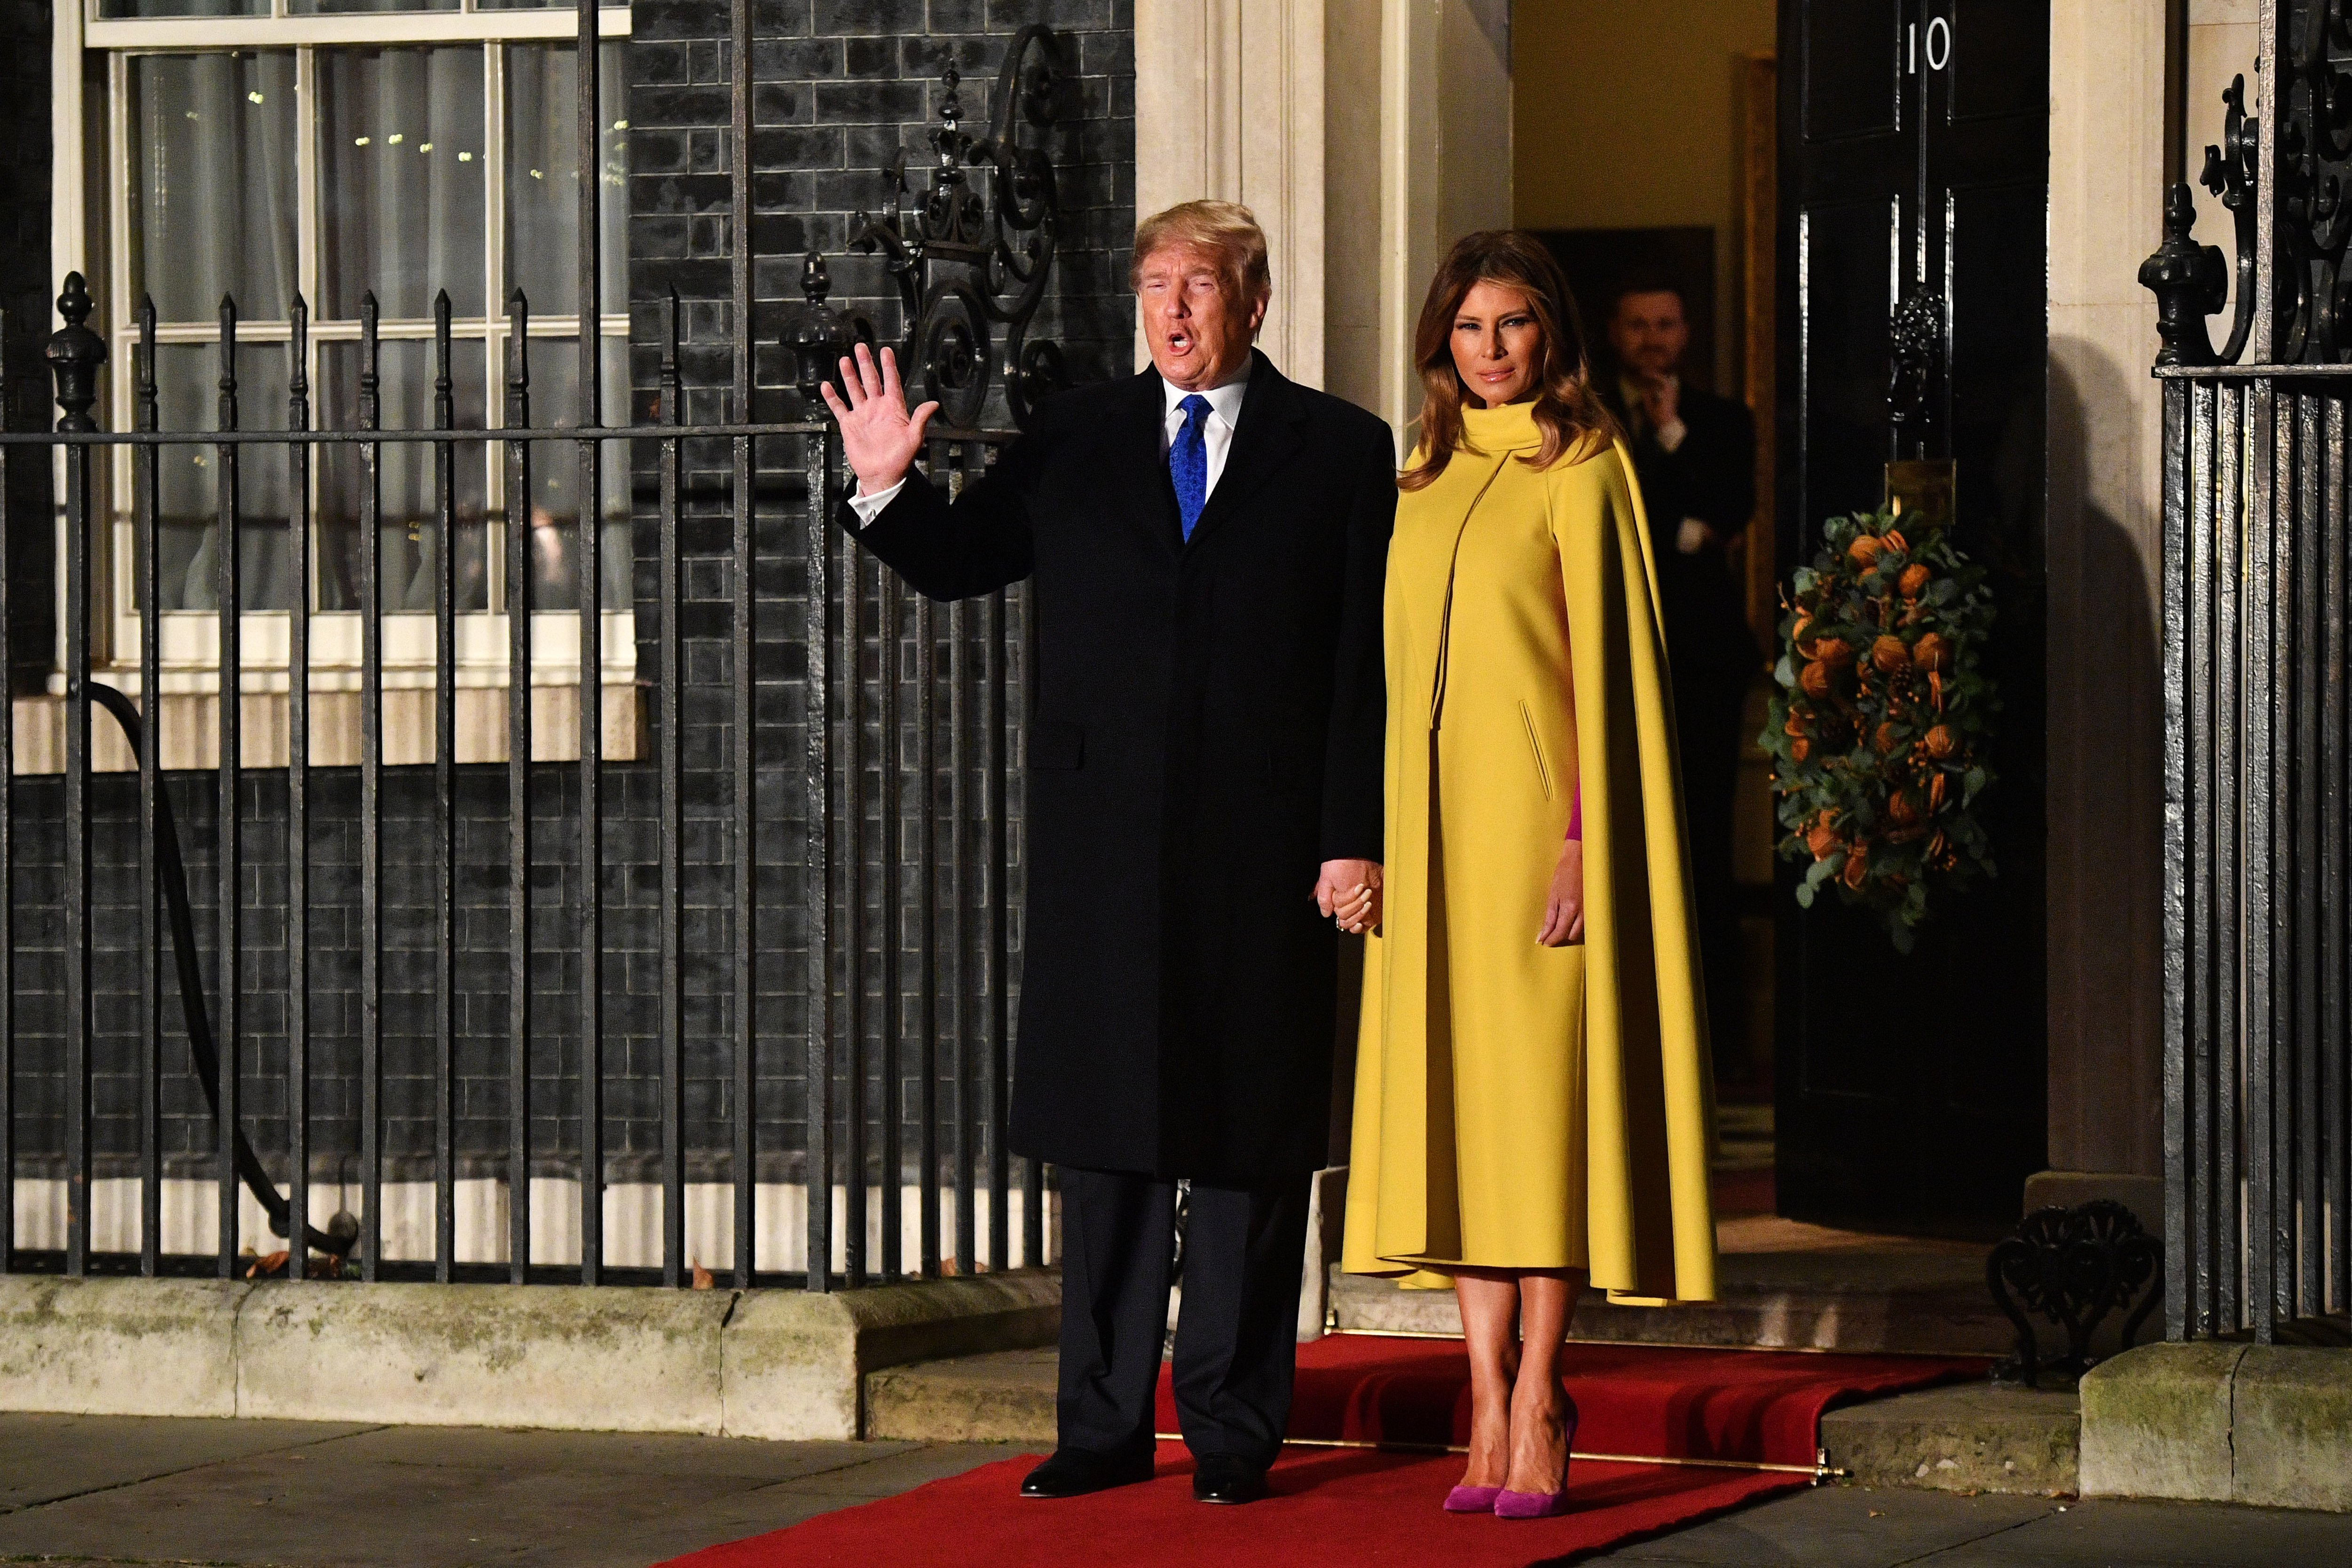 Donald Trump and Melania Trump attend the NATO Summit in London, England on December 3, 2019 | Photo: Getty Images